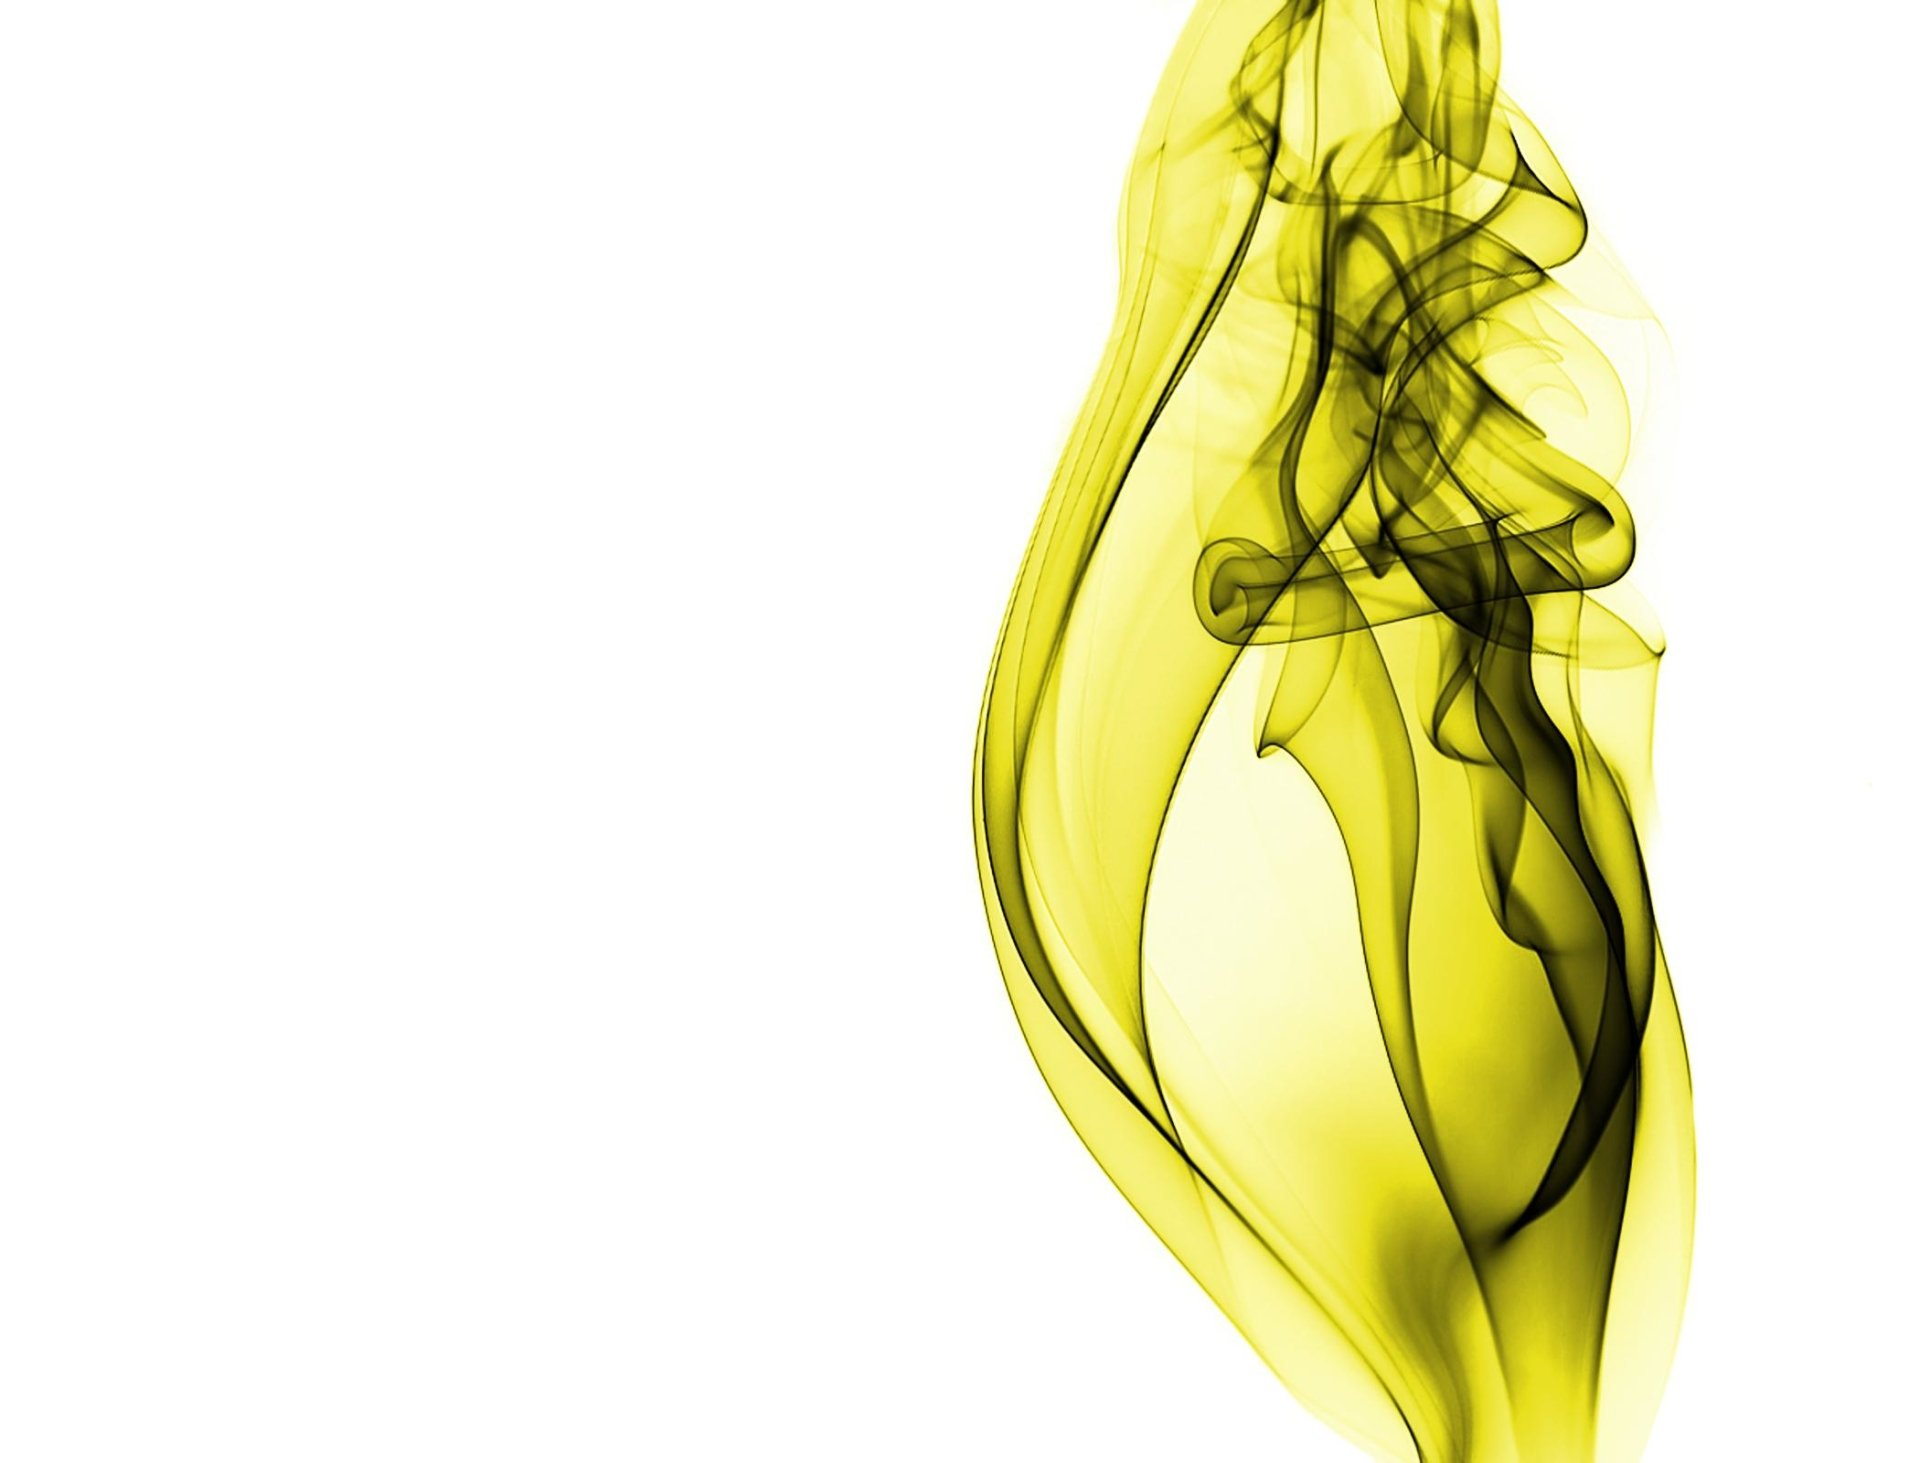 Abstract - White  Pattern CGI Yellow Smoke Artistic Wallpaper